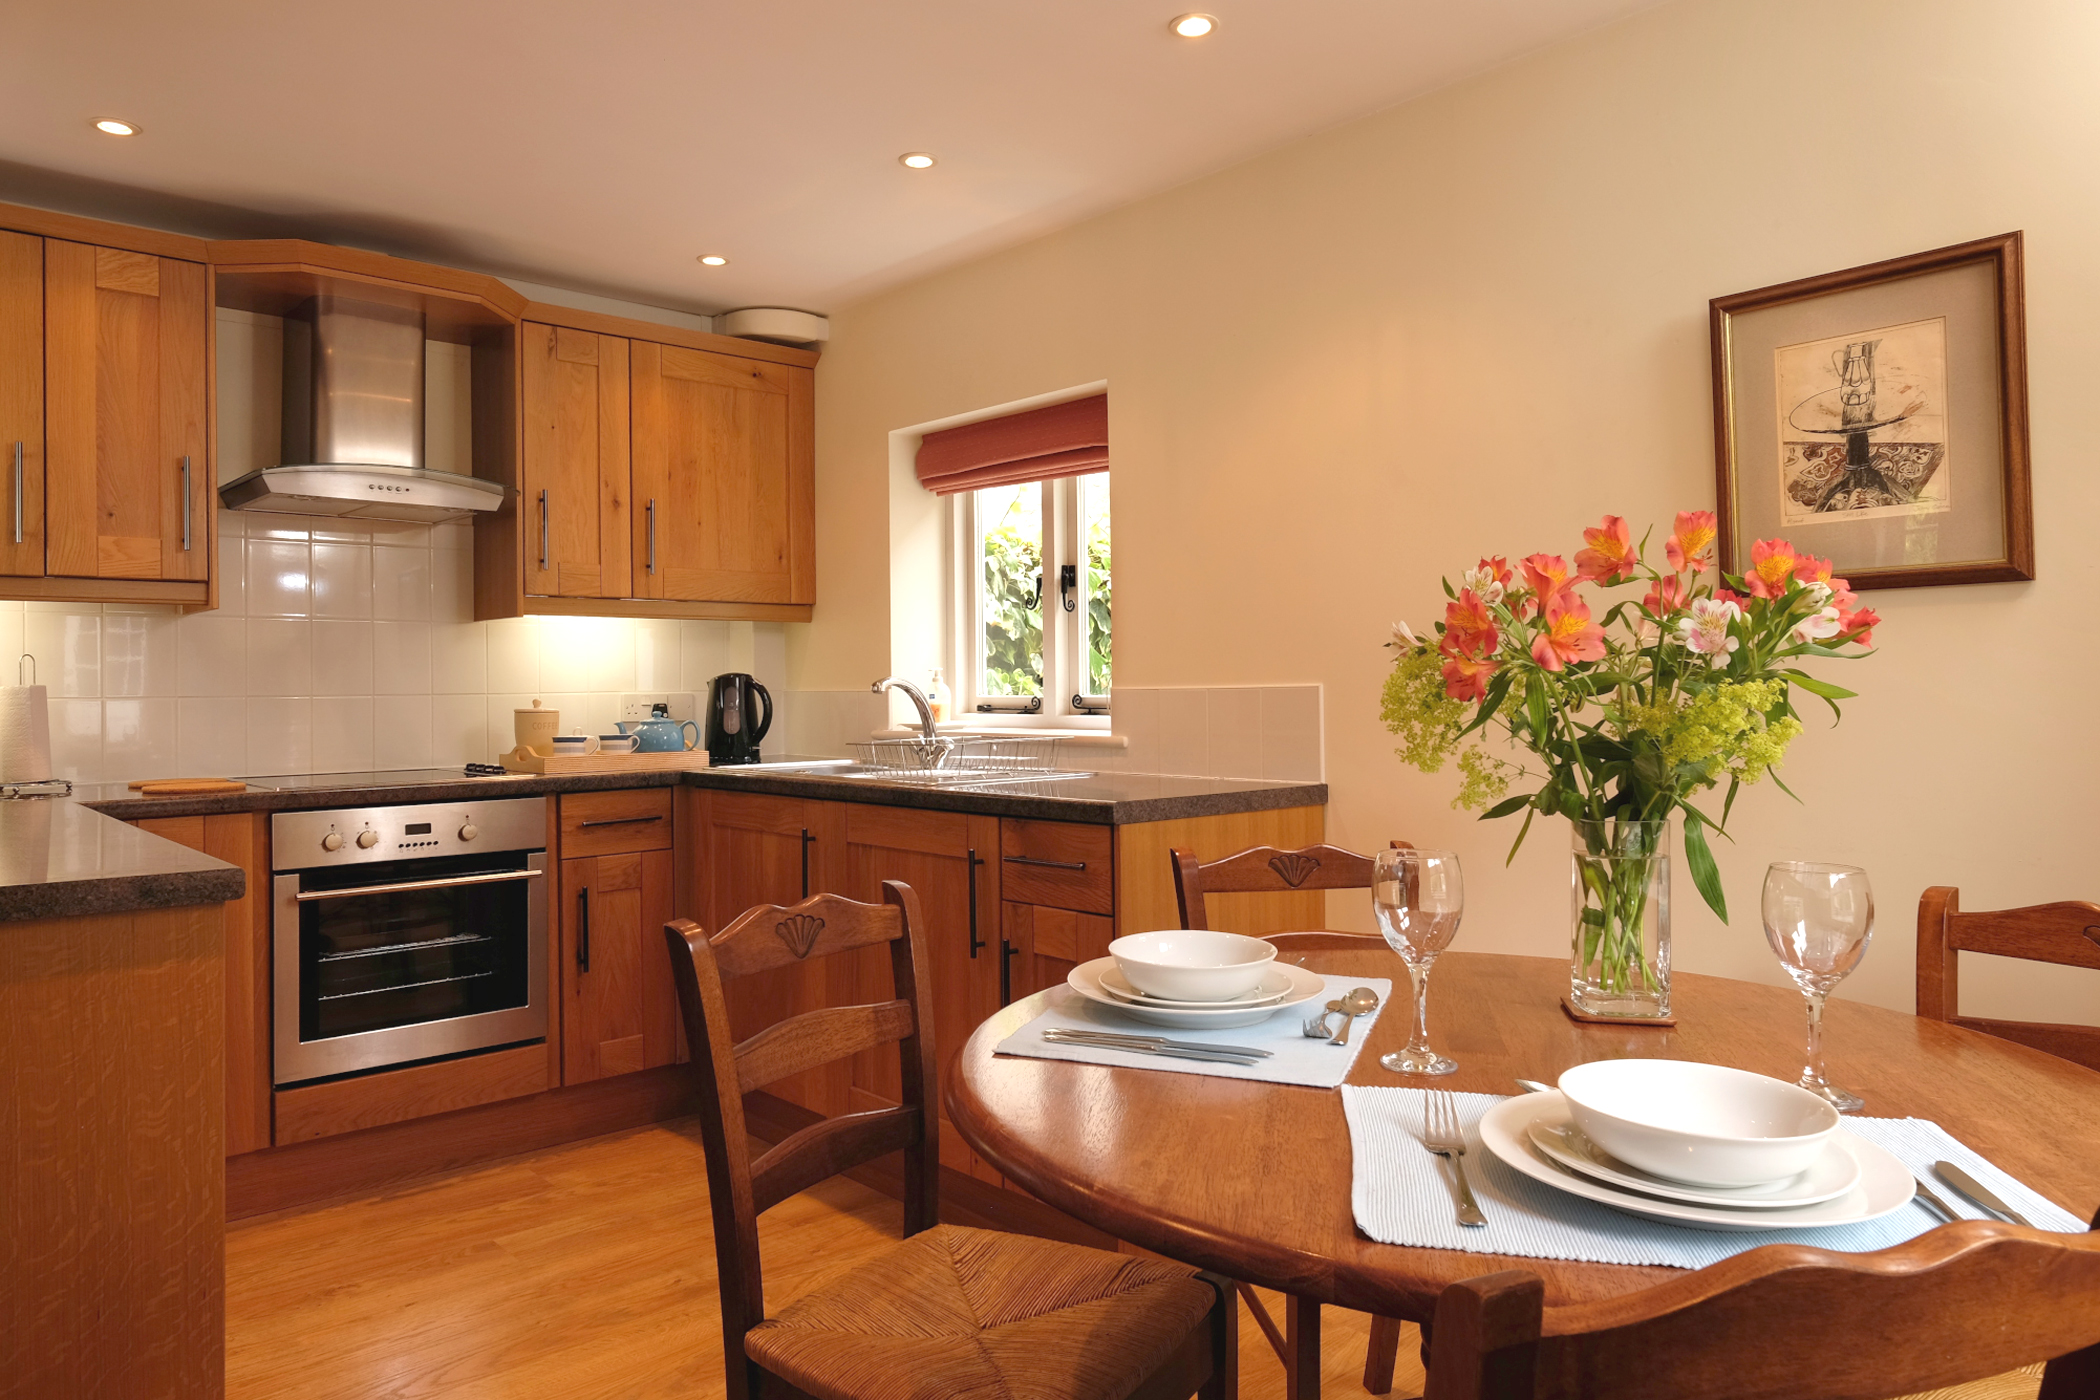 The kitchen diner is well equipped with modern appliances